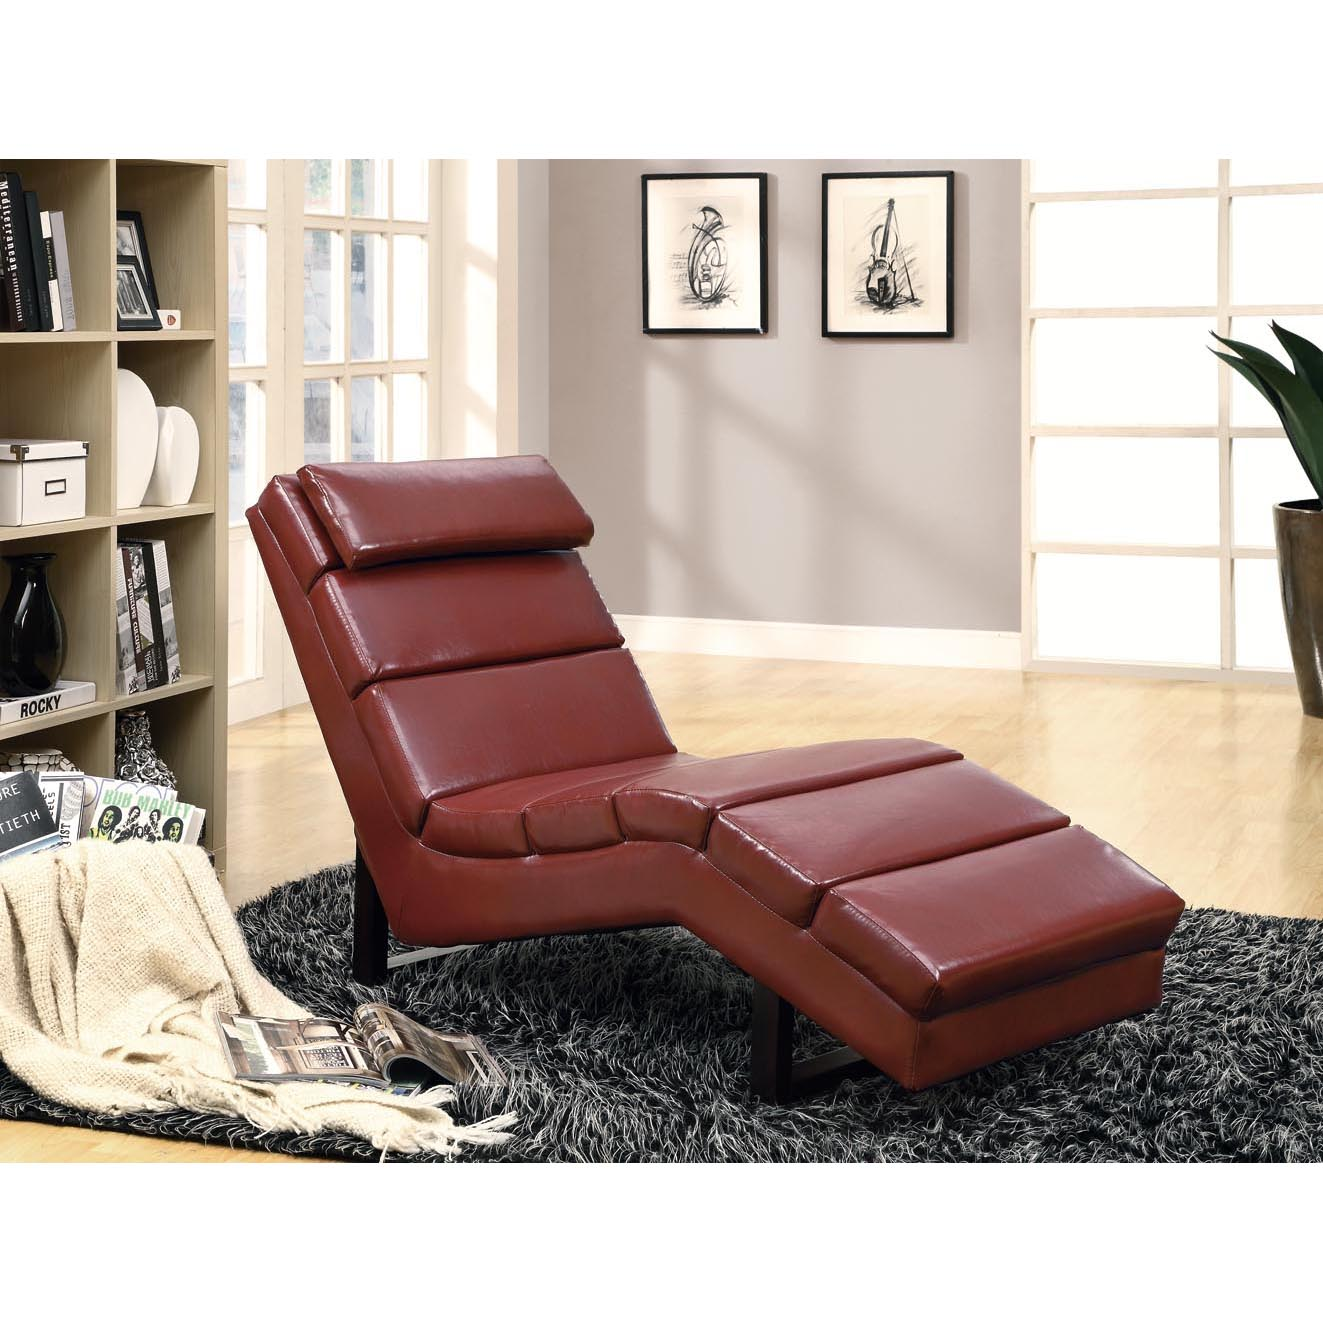 Red Leather-Look Chaise Lounger